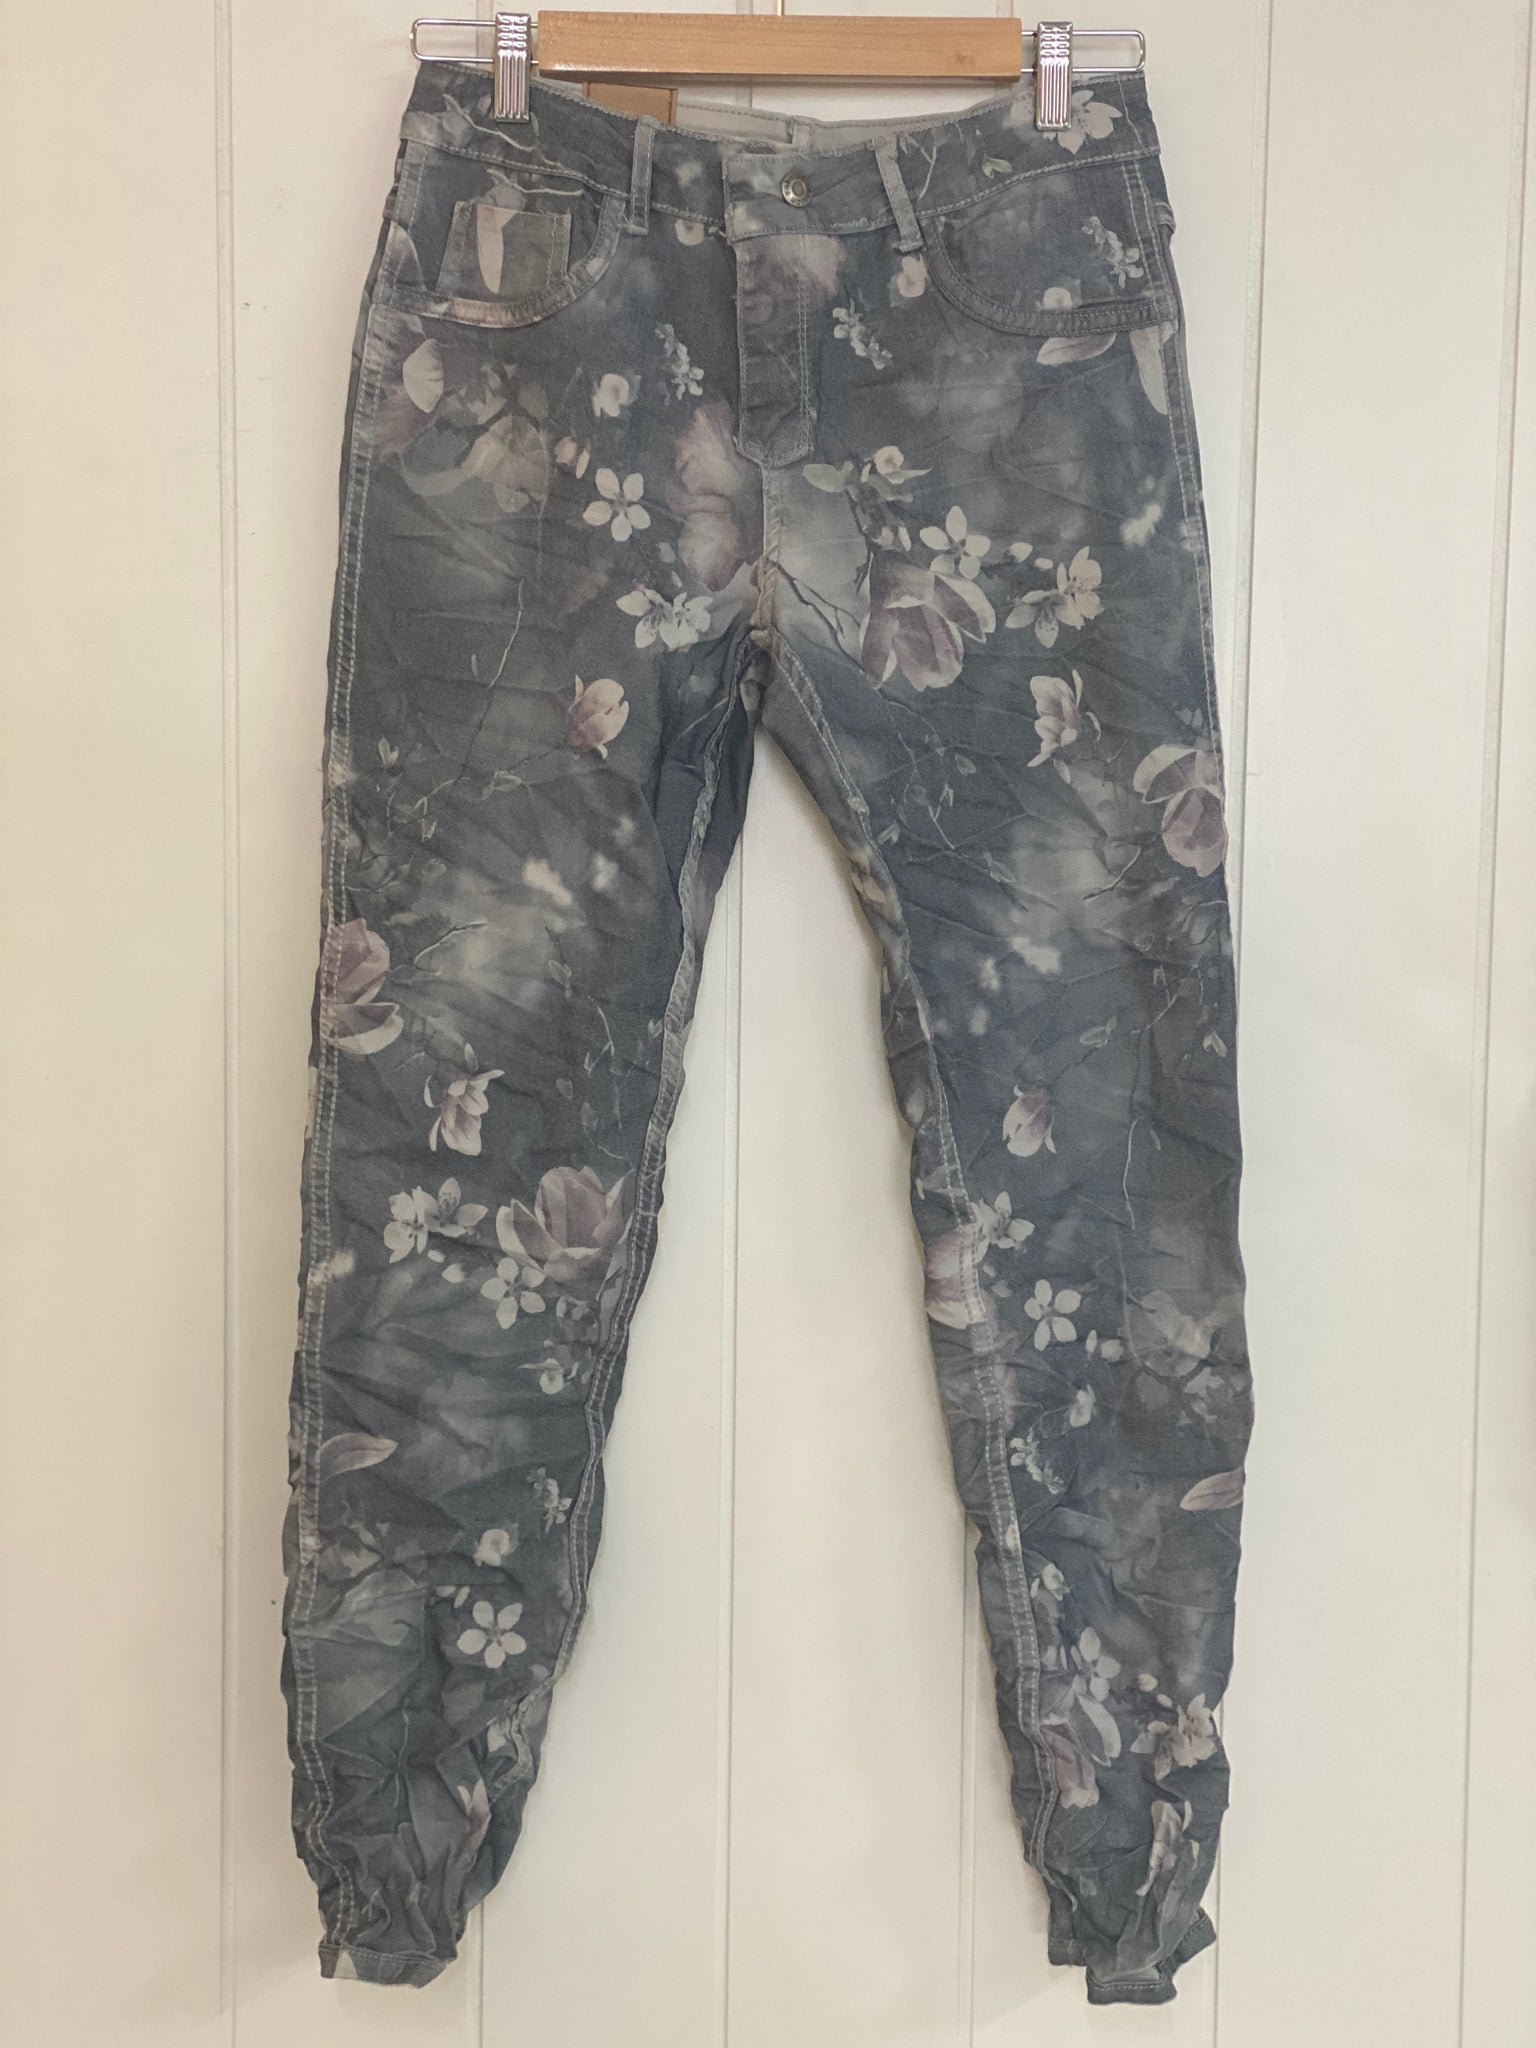 ONADO Paris Reversible Jeans - H1108-GR